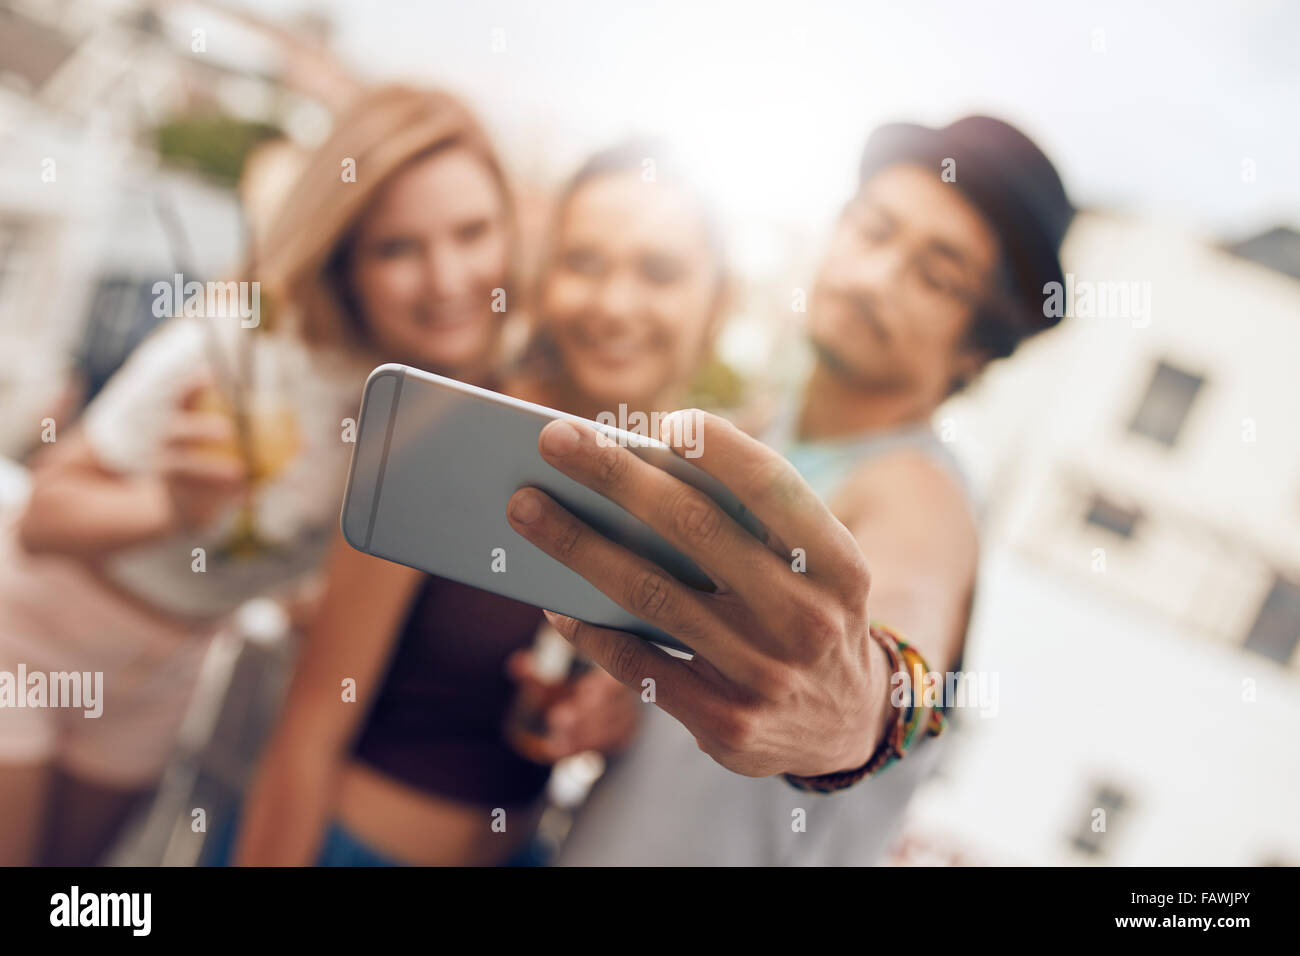 Young friends in a party taking self portrait with their smart phone. Focus on mobile phone in man's hand. - Stock Image